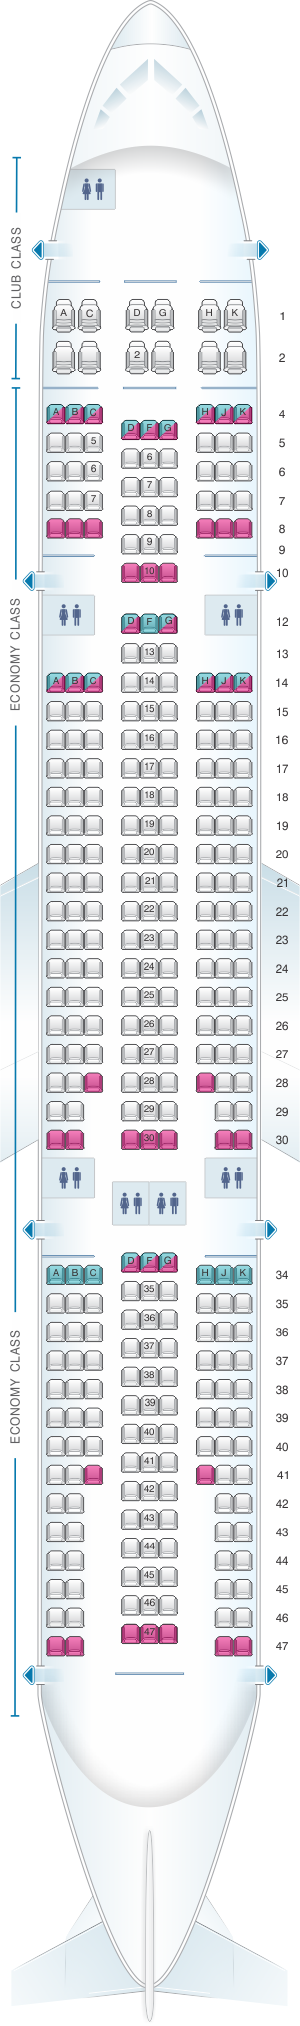 Seat map for Air Transat Airbus A330 200 low density